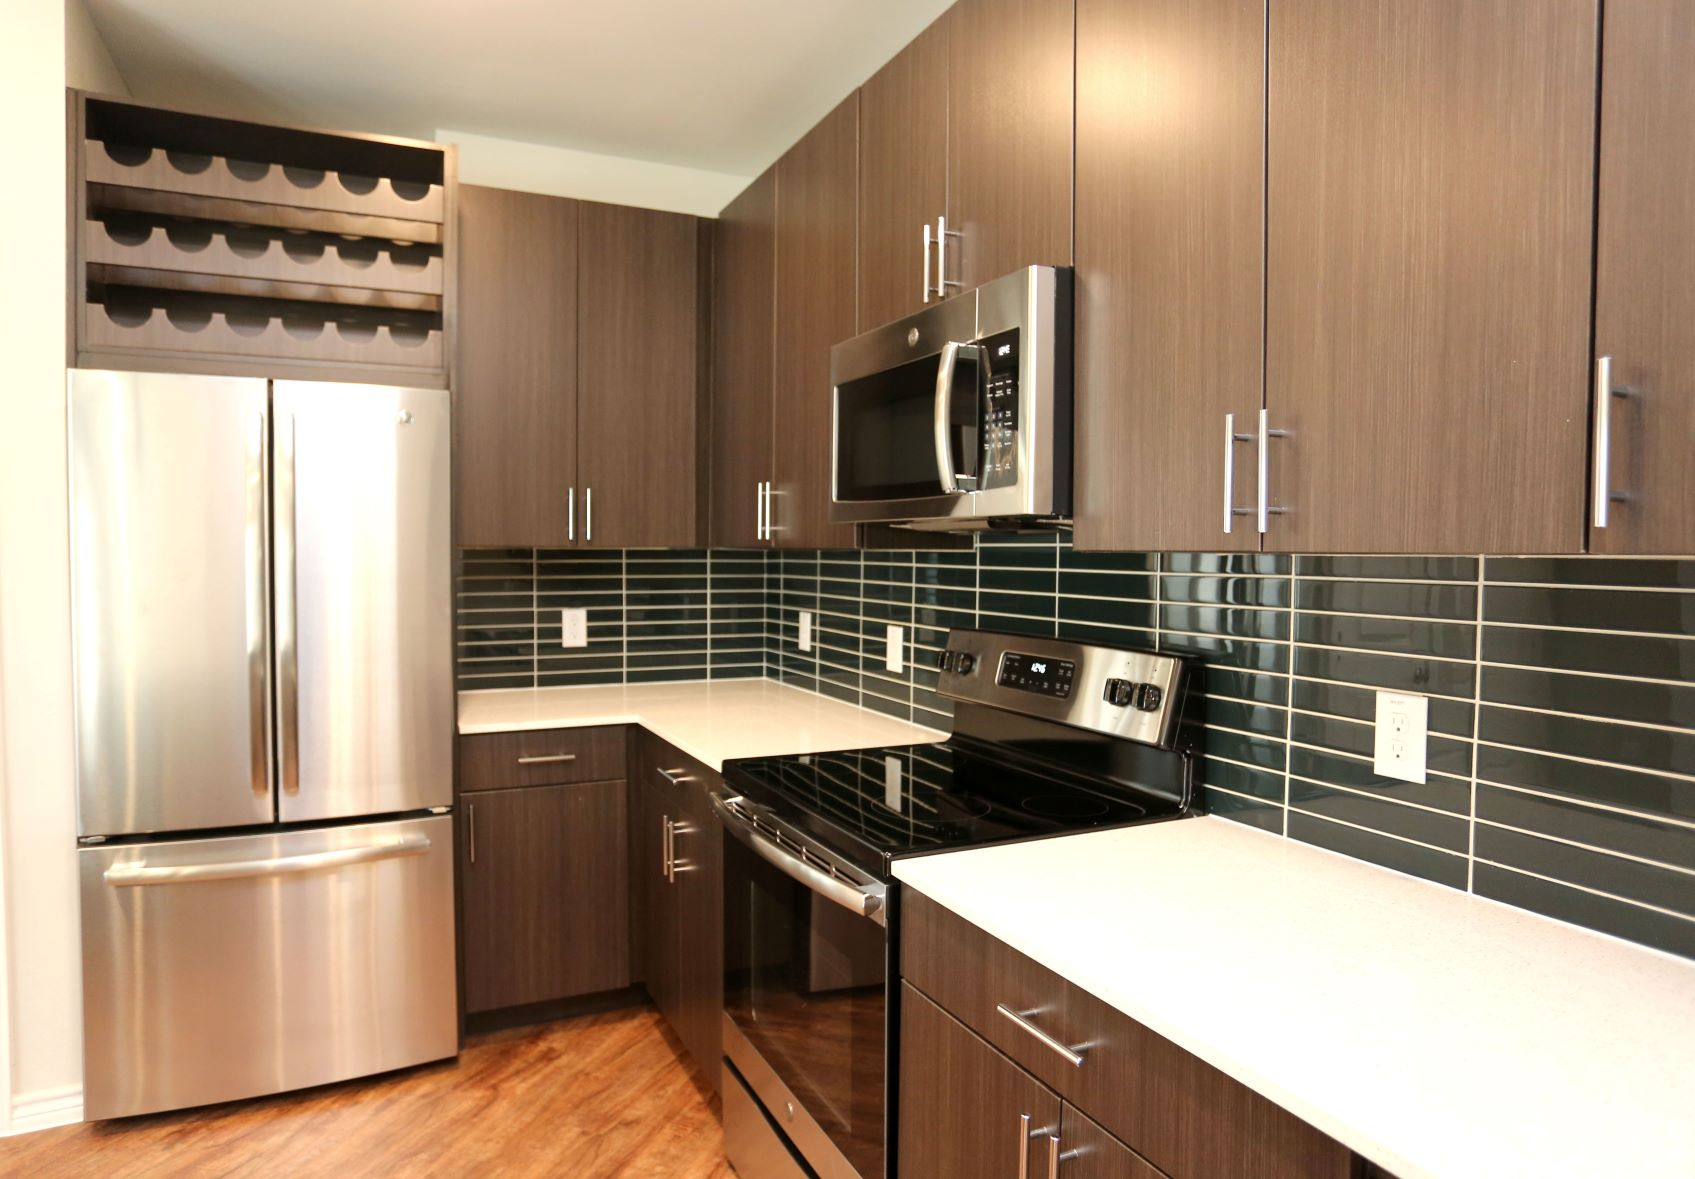 Stainless steel appliances, quartz countertops!